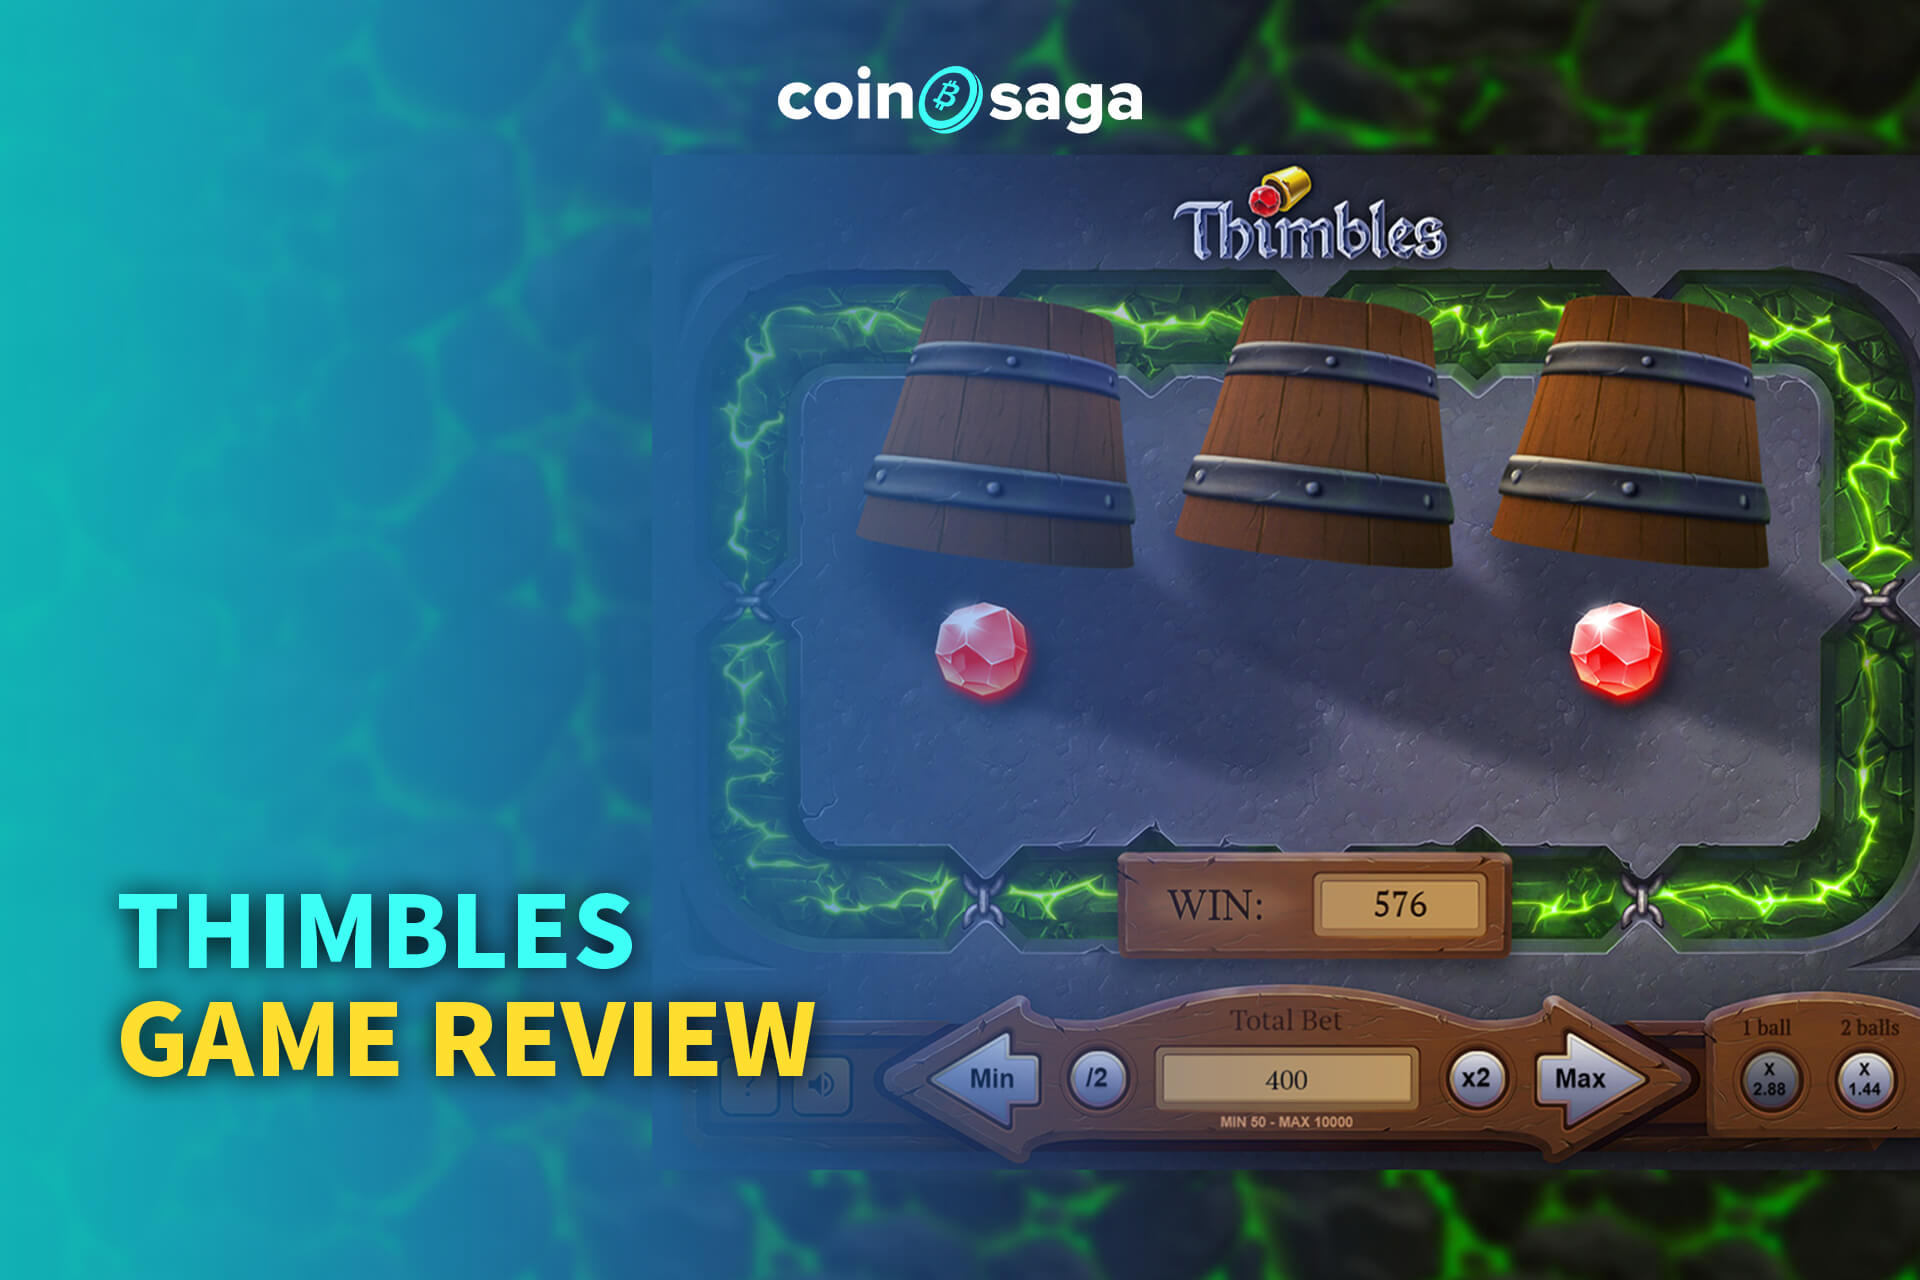 Thimbles Casino Game Review